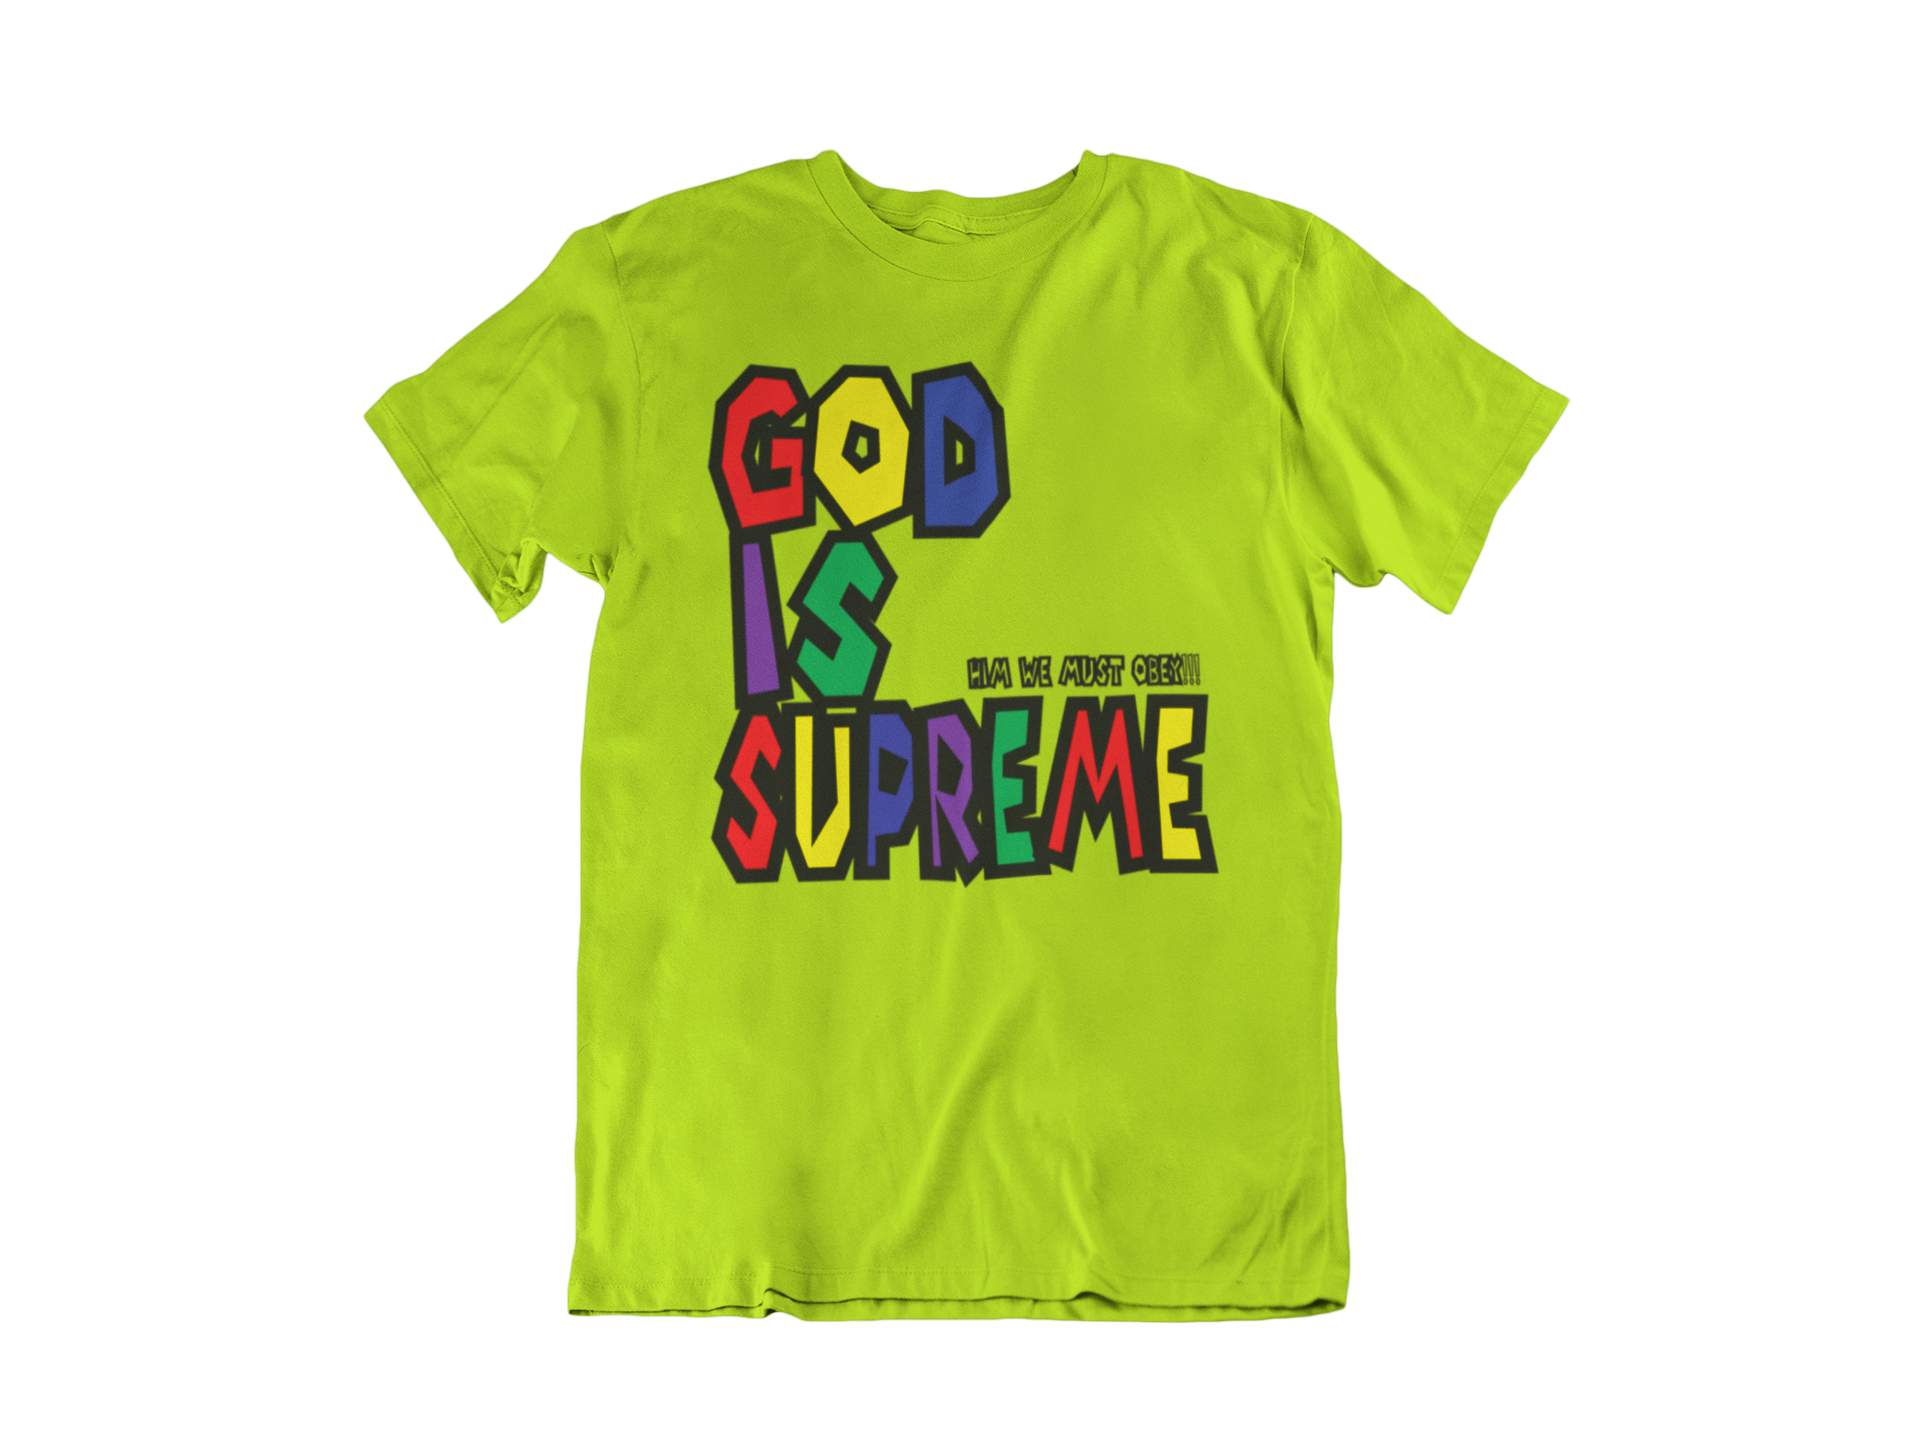 God is Supreme Wild Special Edition Lime T-shirt - God Is Supreme